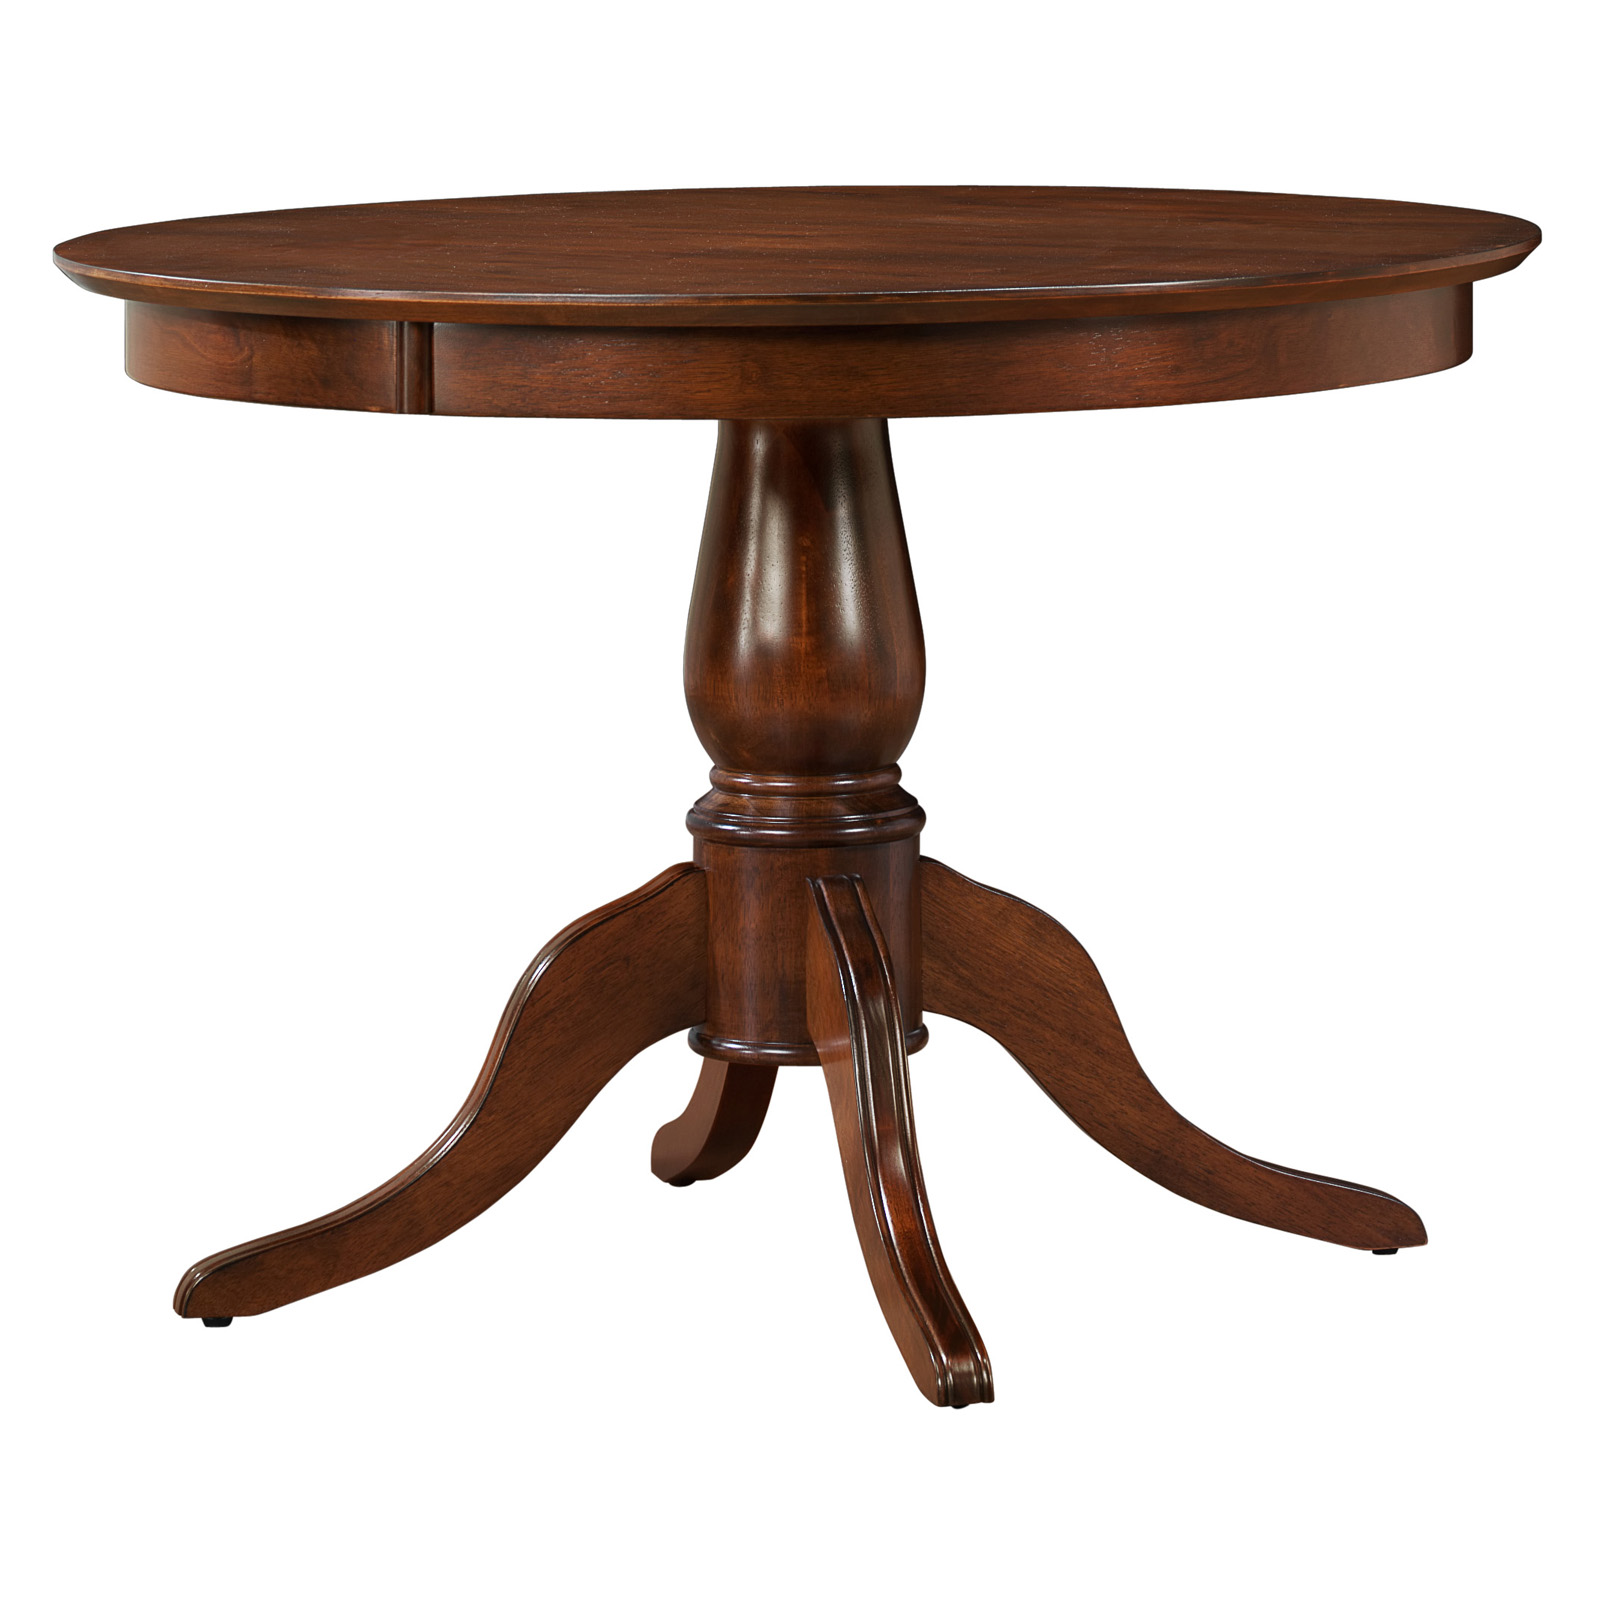 Clifton 42 in round pedestal dining table mahogany at for Dining room tables 42 round